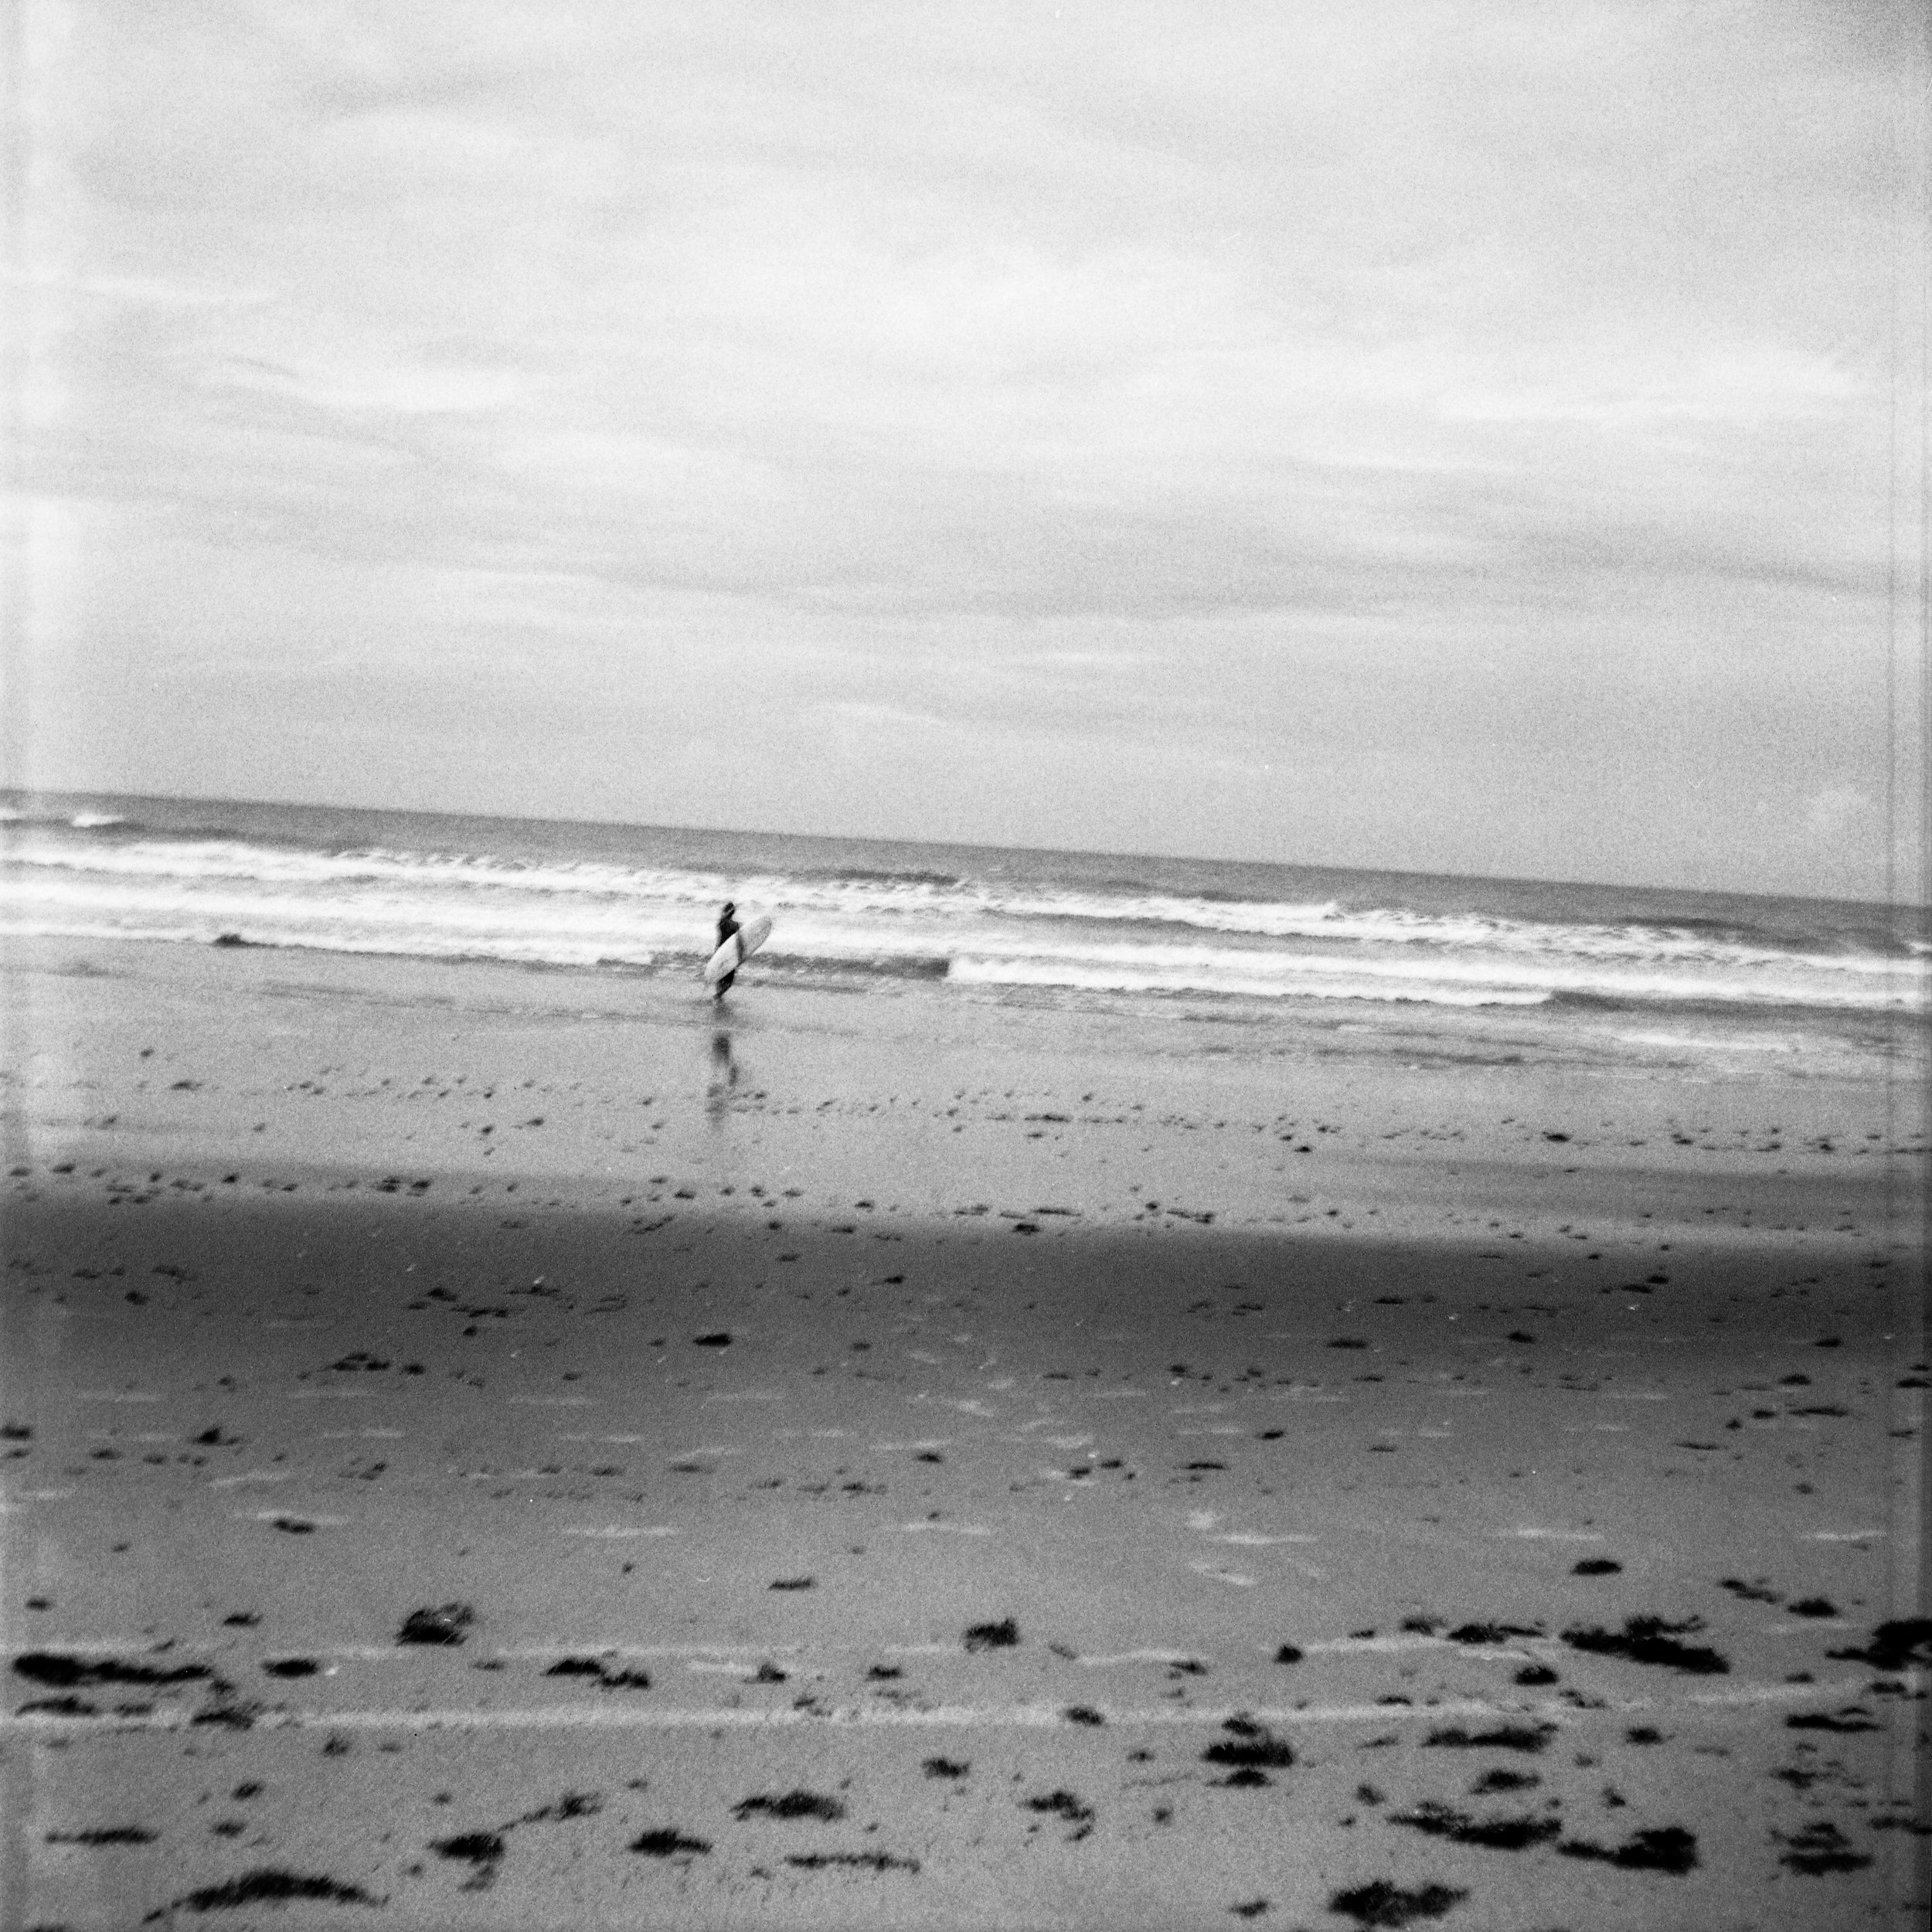 1949 Kodak Brownie Hawkeye Photo Medium Format 620 Film Zoe Kissel Photo Cocoa Beach Florida